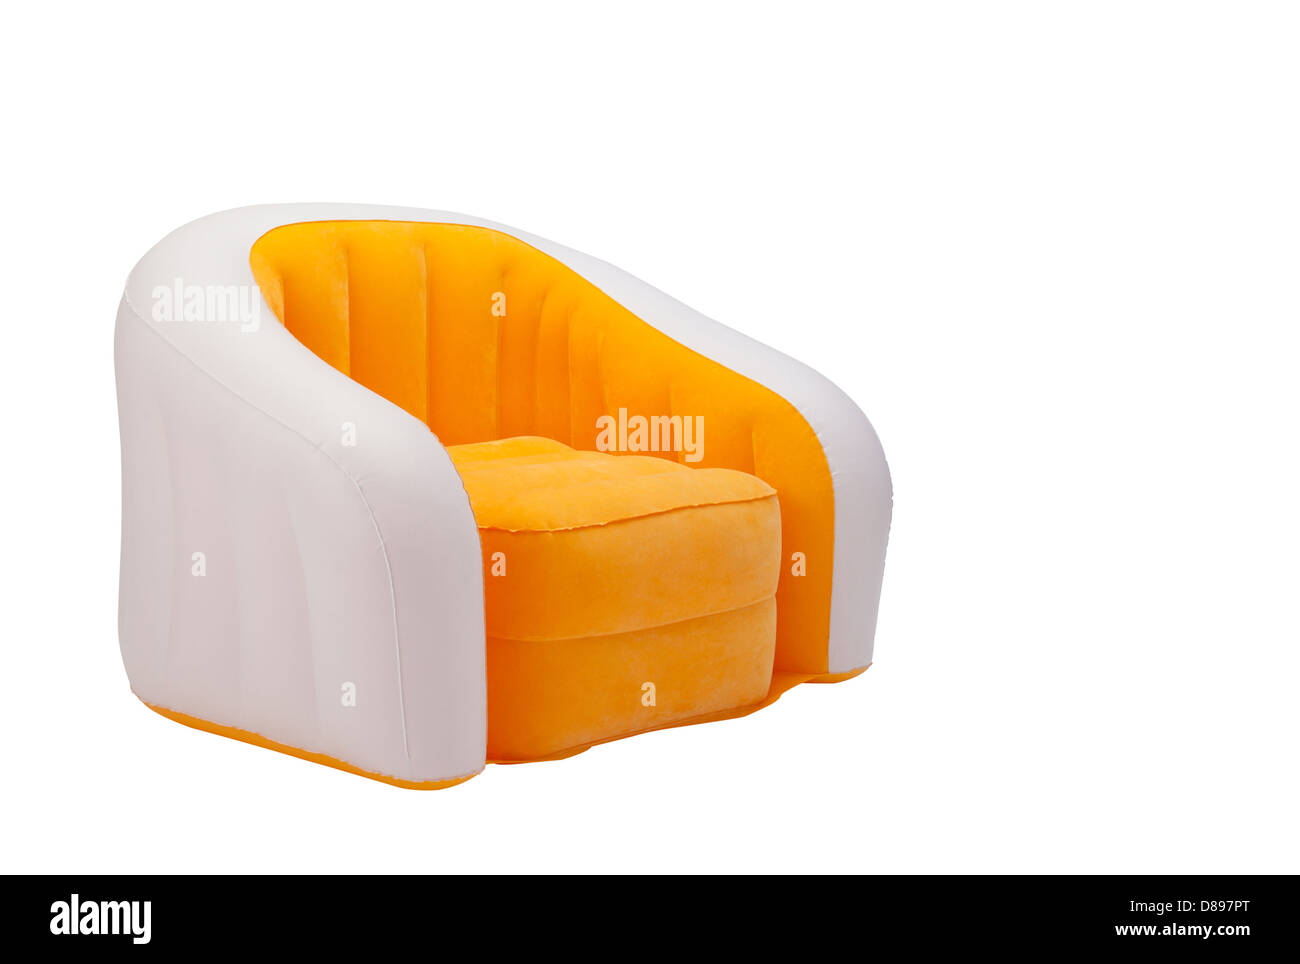 Inflatable orange color armchair isolated on white background - Stock Image